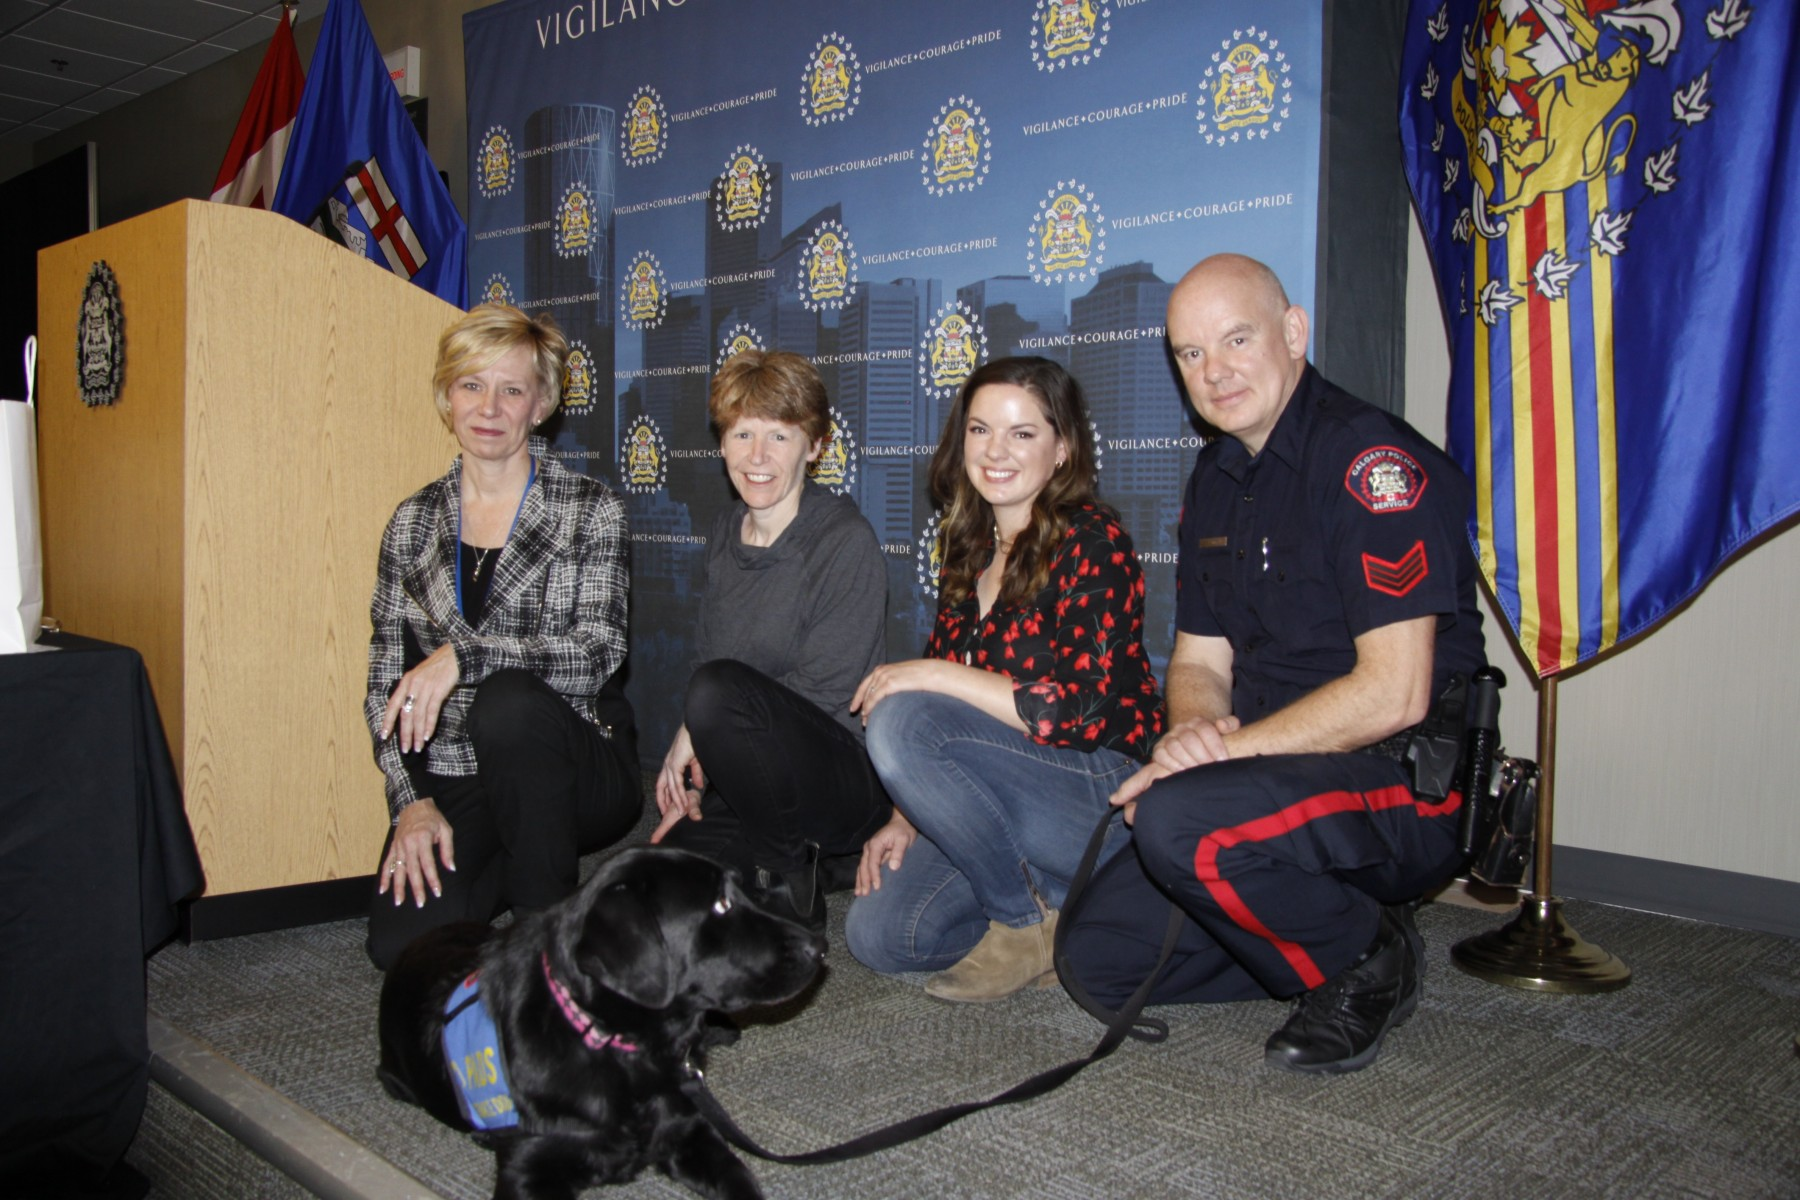 Pictured from left to right; Laura, Margaret and Miranda of Pacific Assistance Dogs Society (PADS), Cst. Steve Hill, Calgary Police Service, and Calibri, Justice Facility Dog, Calgary Police Service